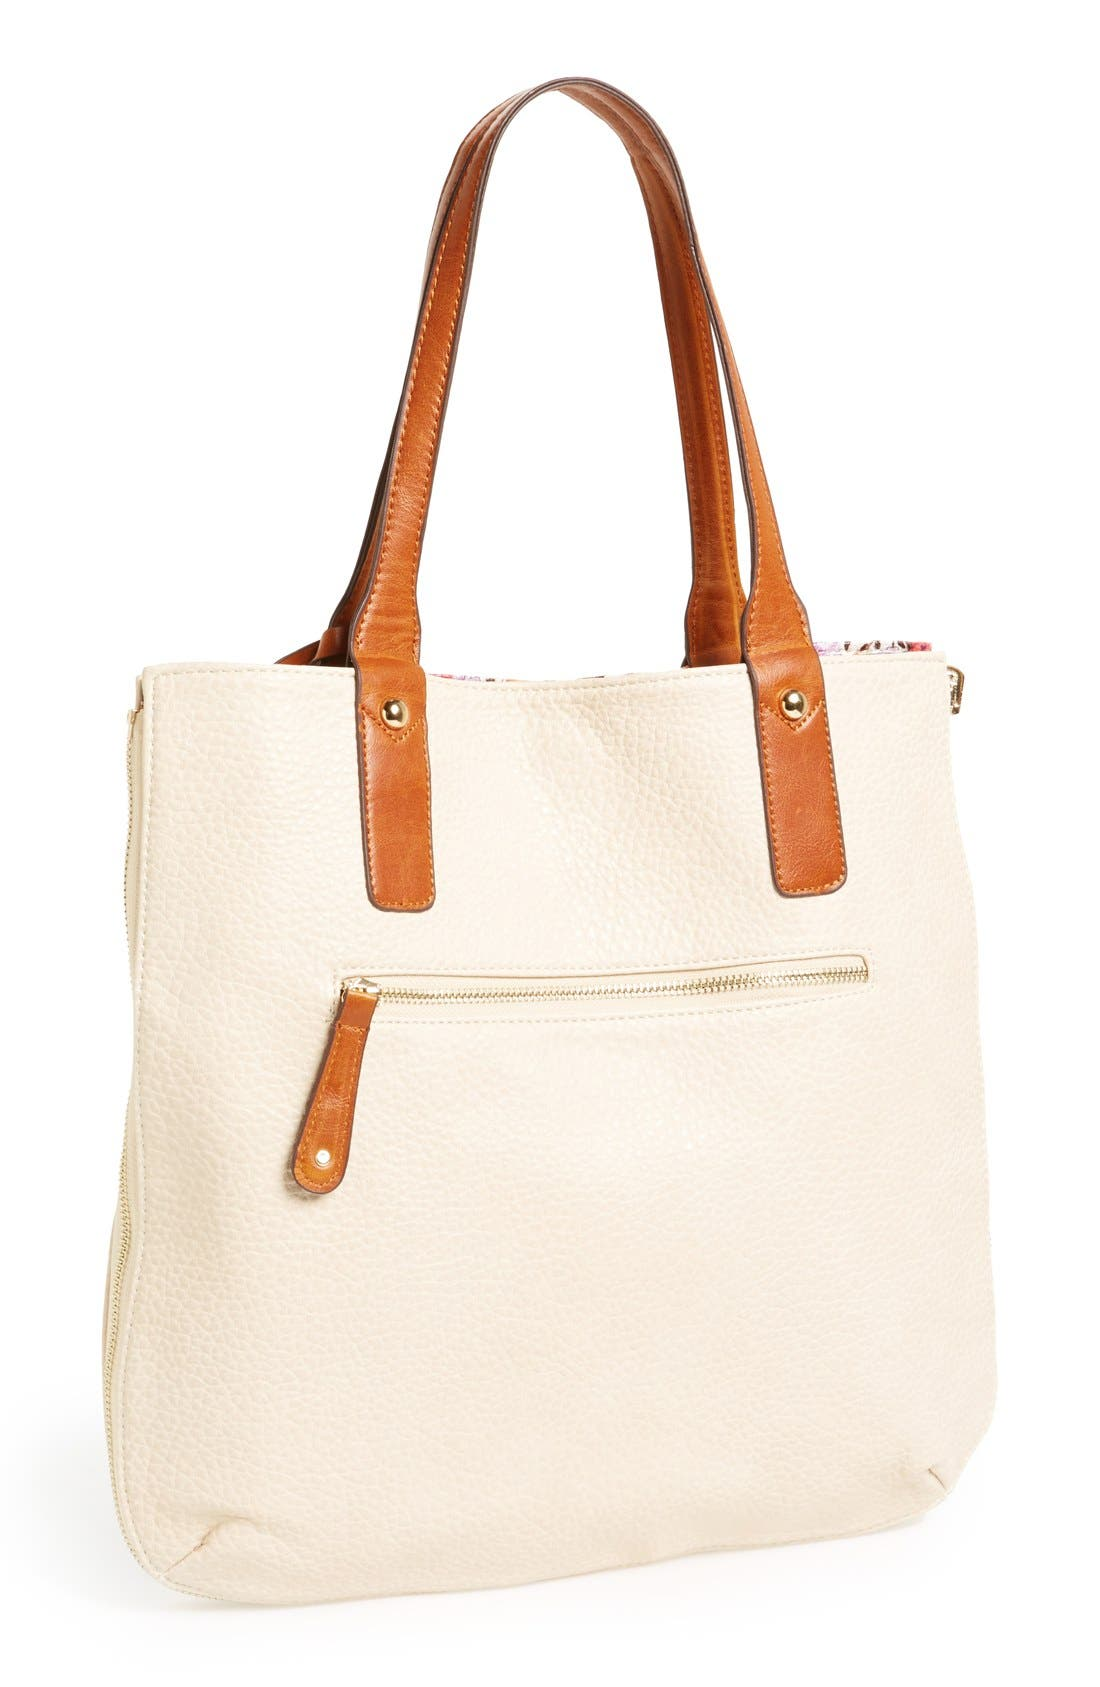 Main Image - Street Level Reversible Floral Tote